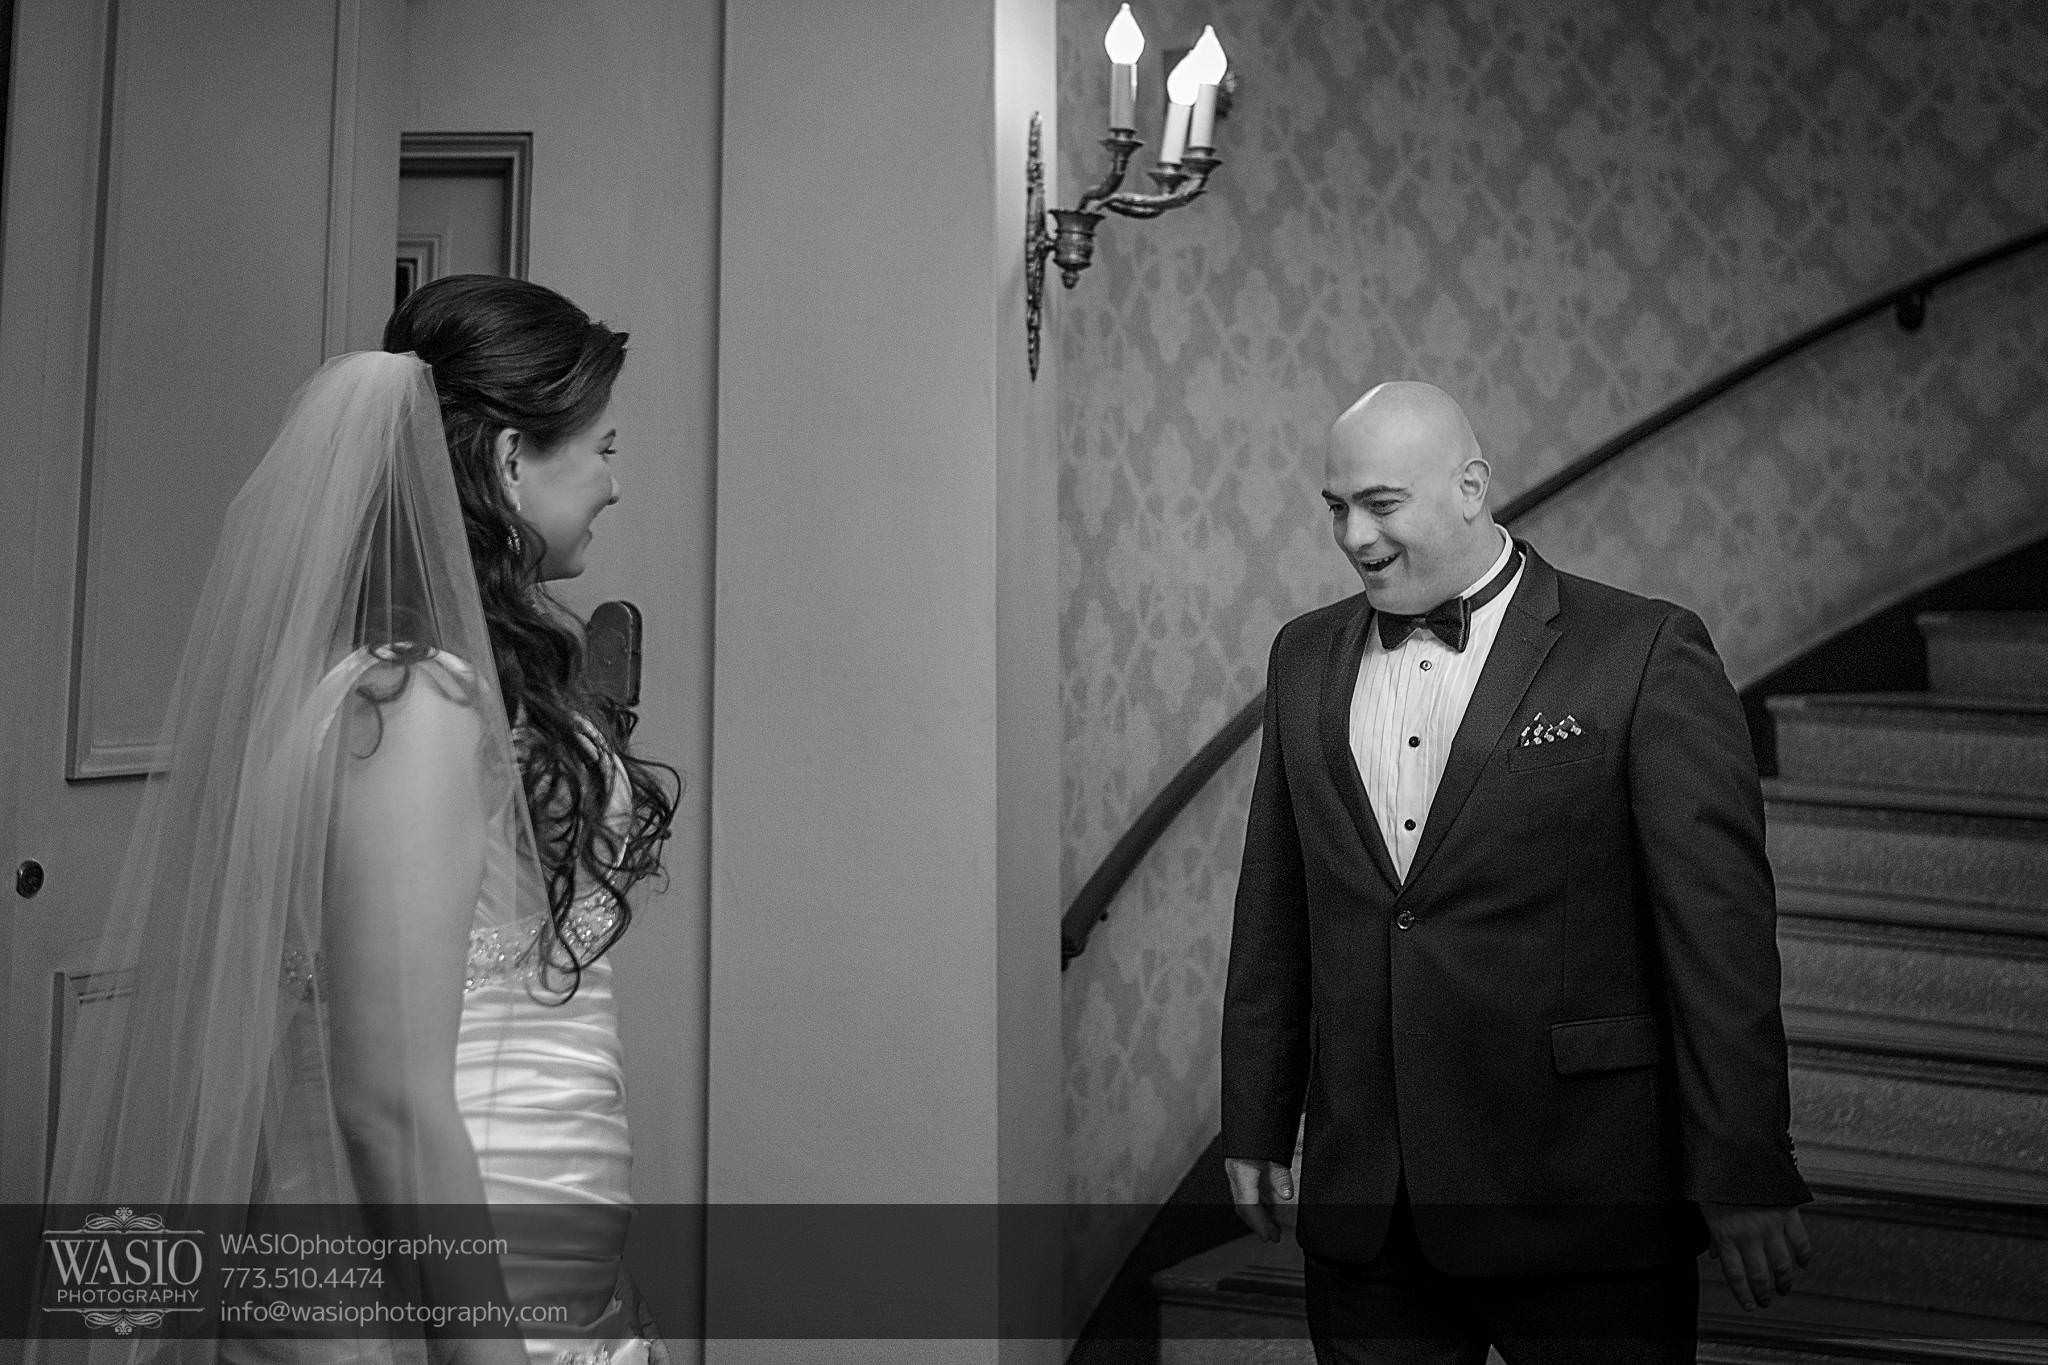 Chicago-wedding-photos-first-look-happy-groom-bride-surprise-029 Chicago Wedding Photos - Svetlana + Yuriy